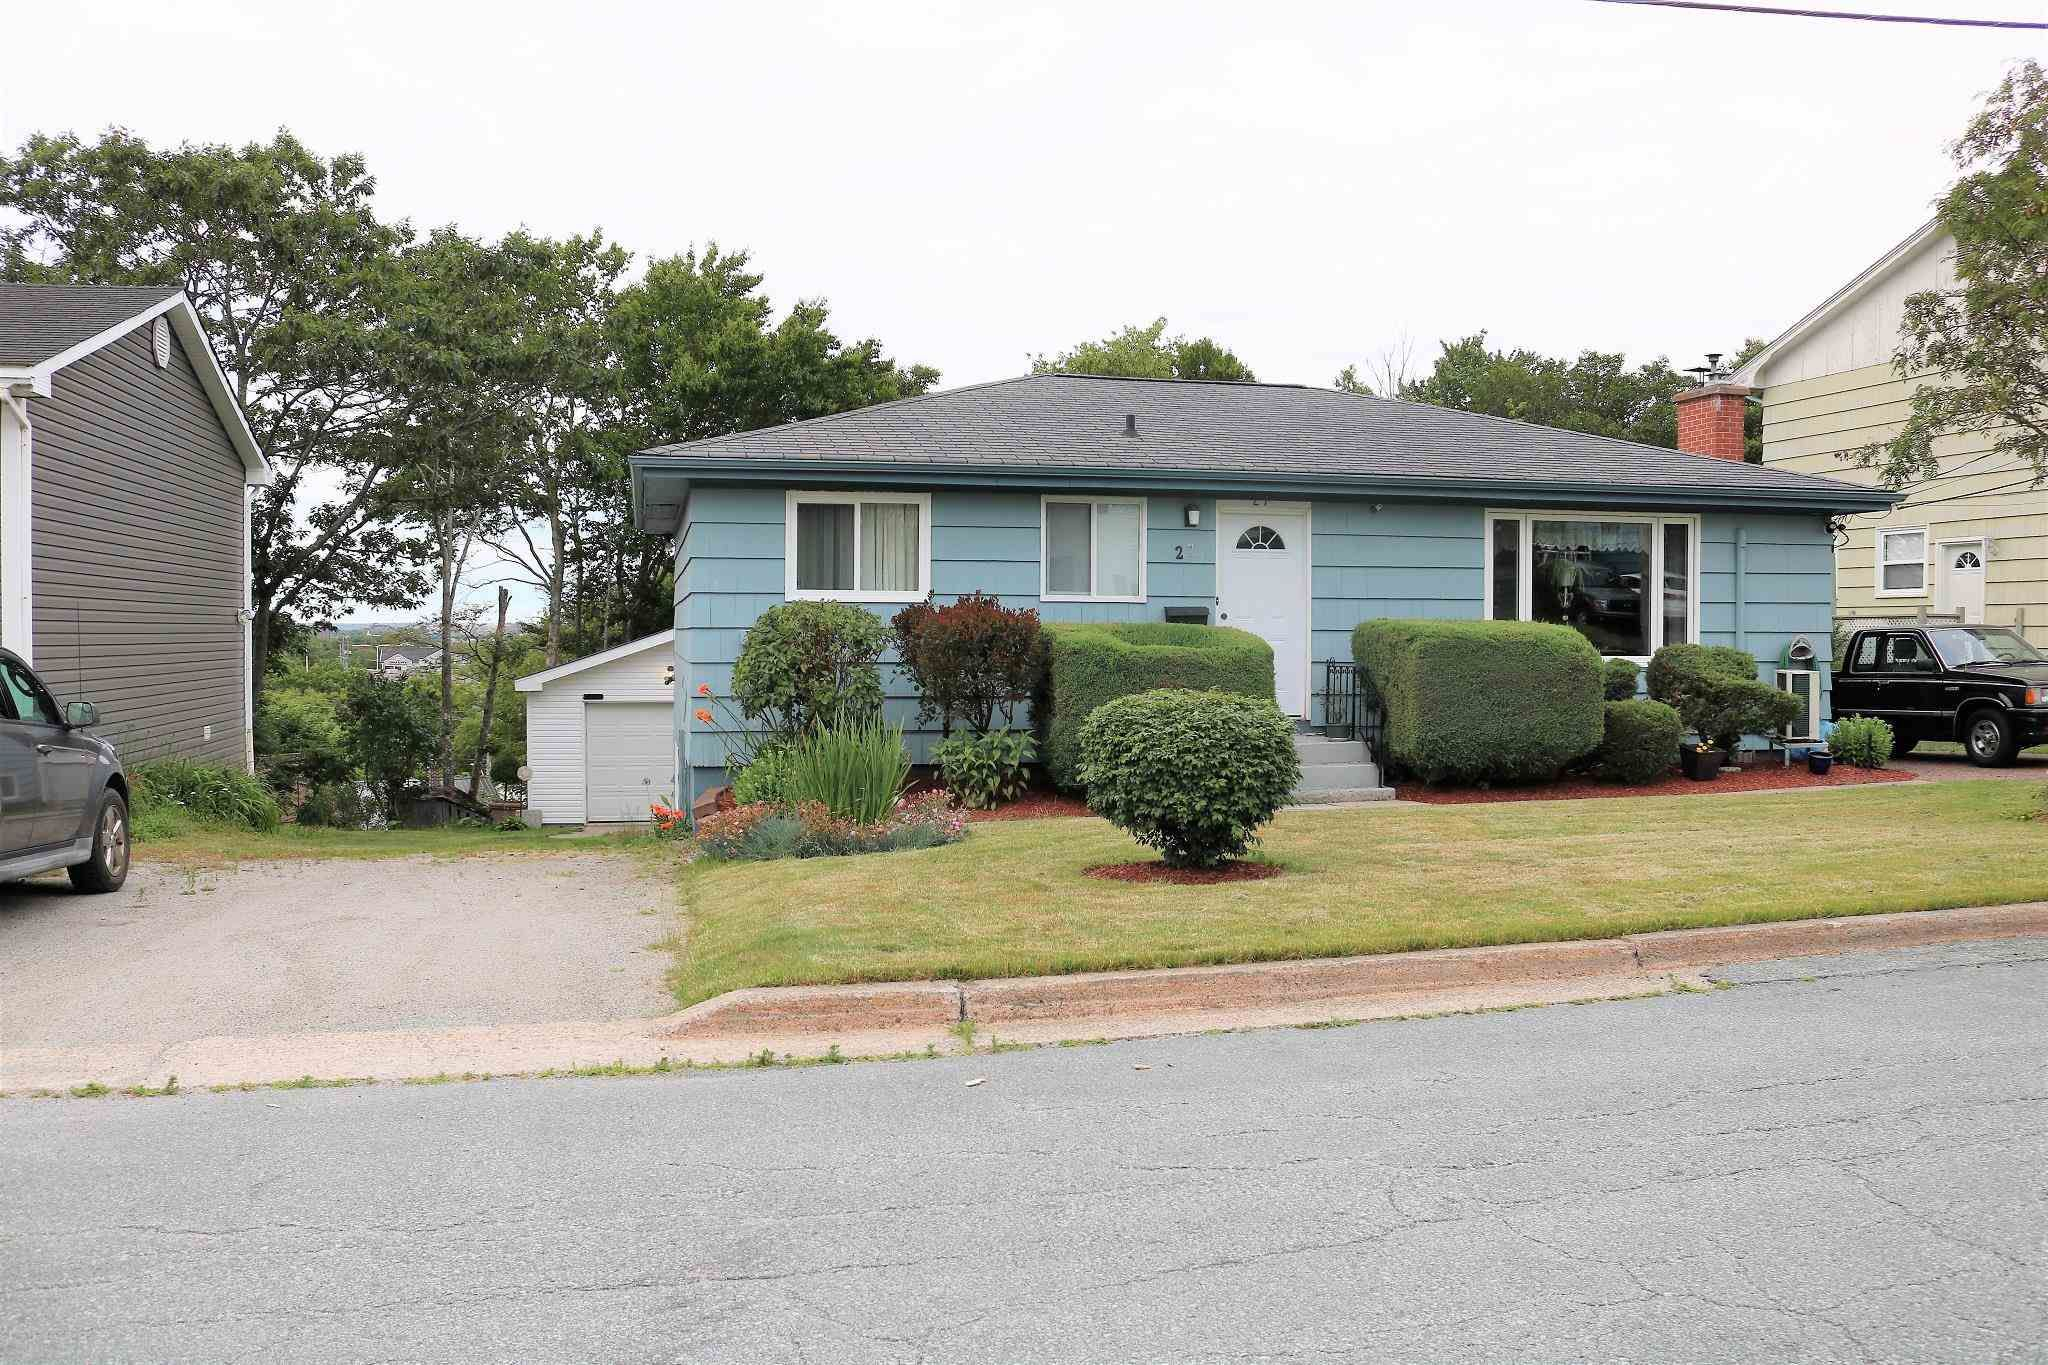 Main Photo: 27 Clearview Street in Spryfield: 7-Spryfield Residential for sale (Halifax-Dartmouth)  : MLS®# 202117872